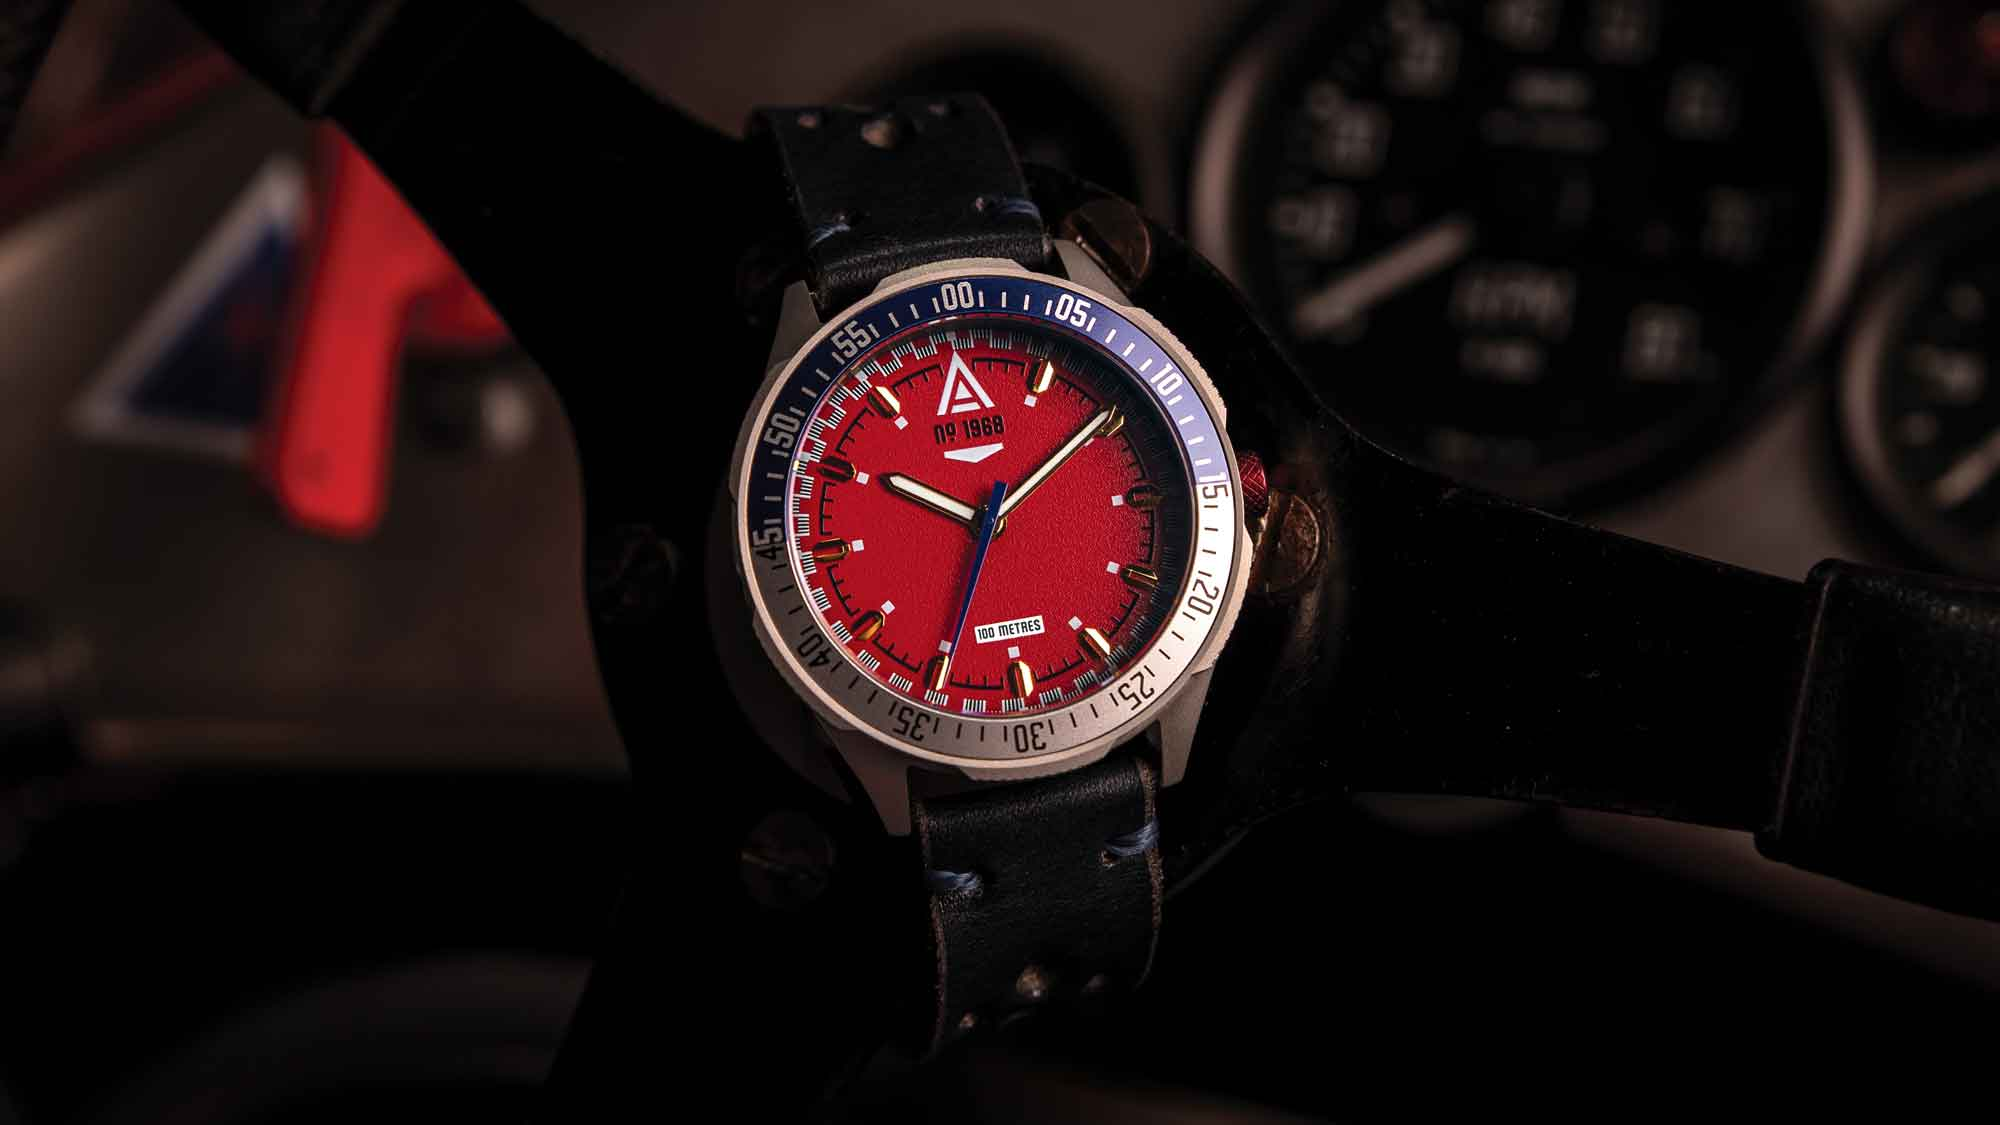 racing watch no 1968 red wt author